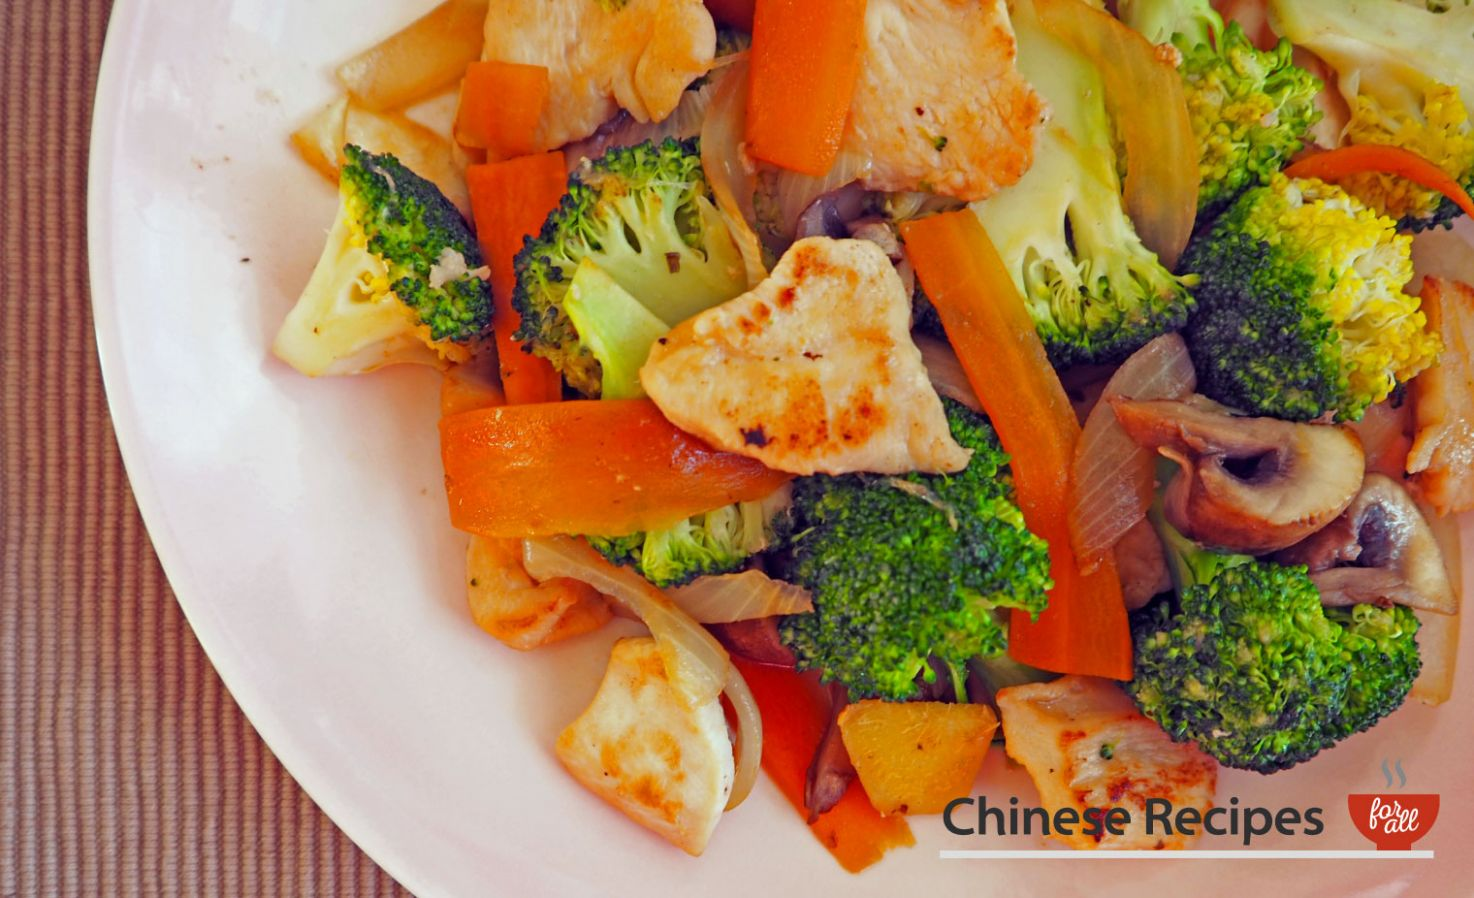 Chicken and Broccoli Vegetable Stir Fry - Vegetable Recipes Chinese